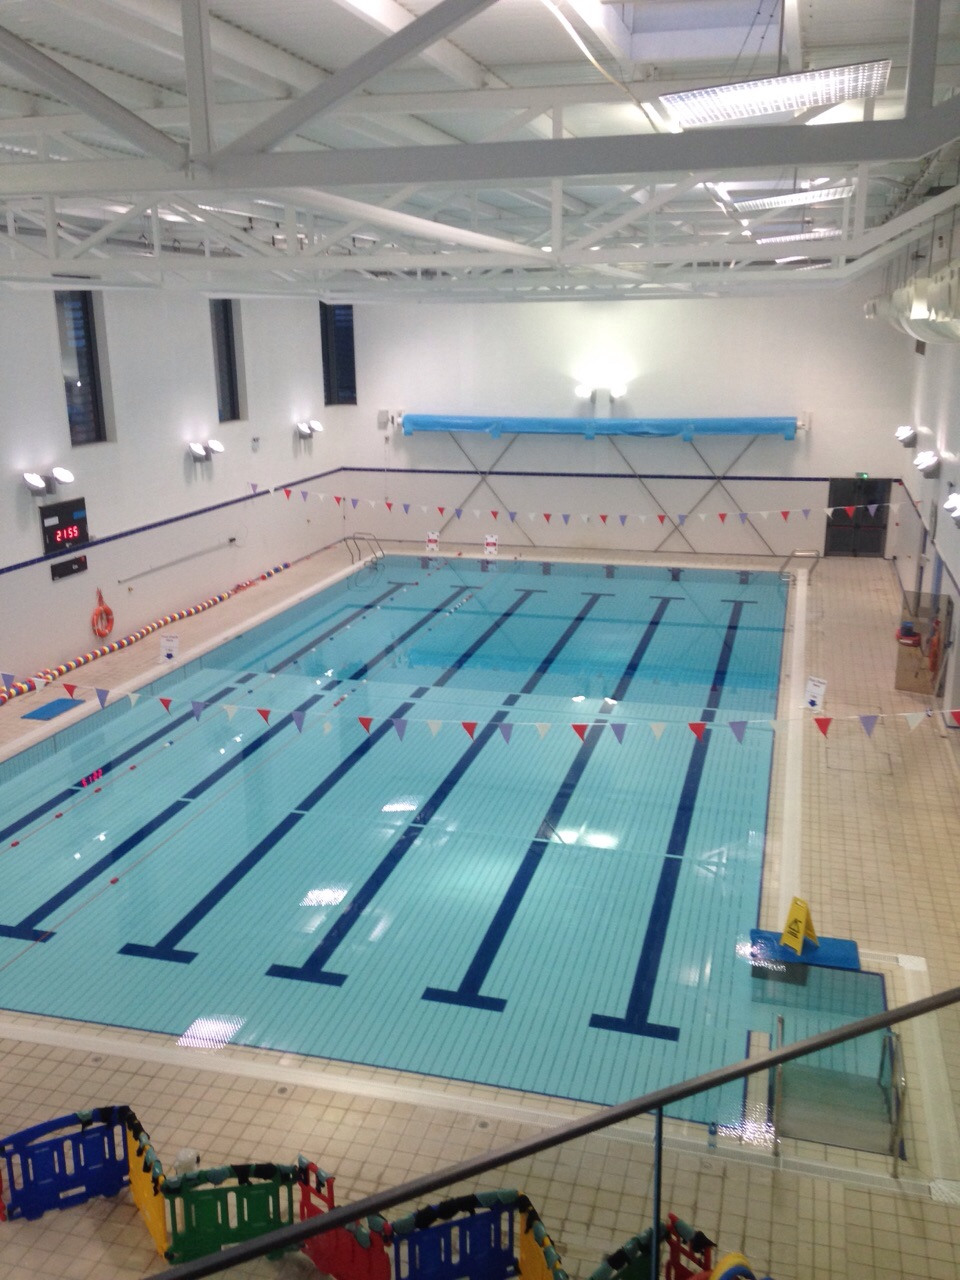 Pools and health suite inspire fitness centre - Hotels with swimming pools in dublin ...